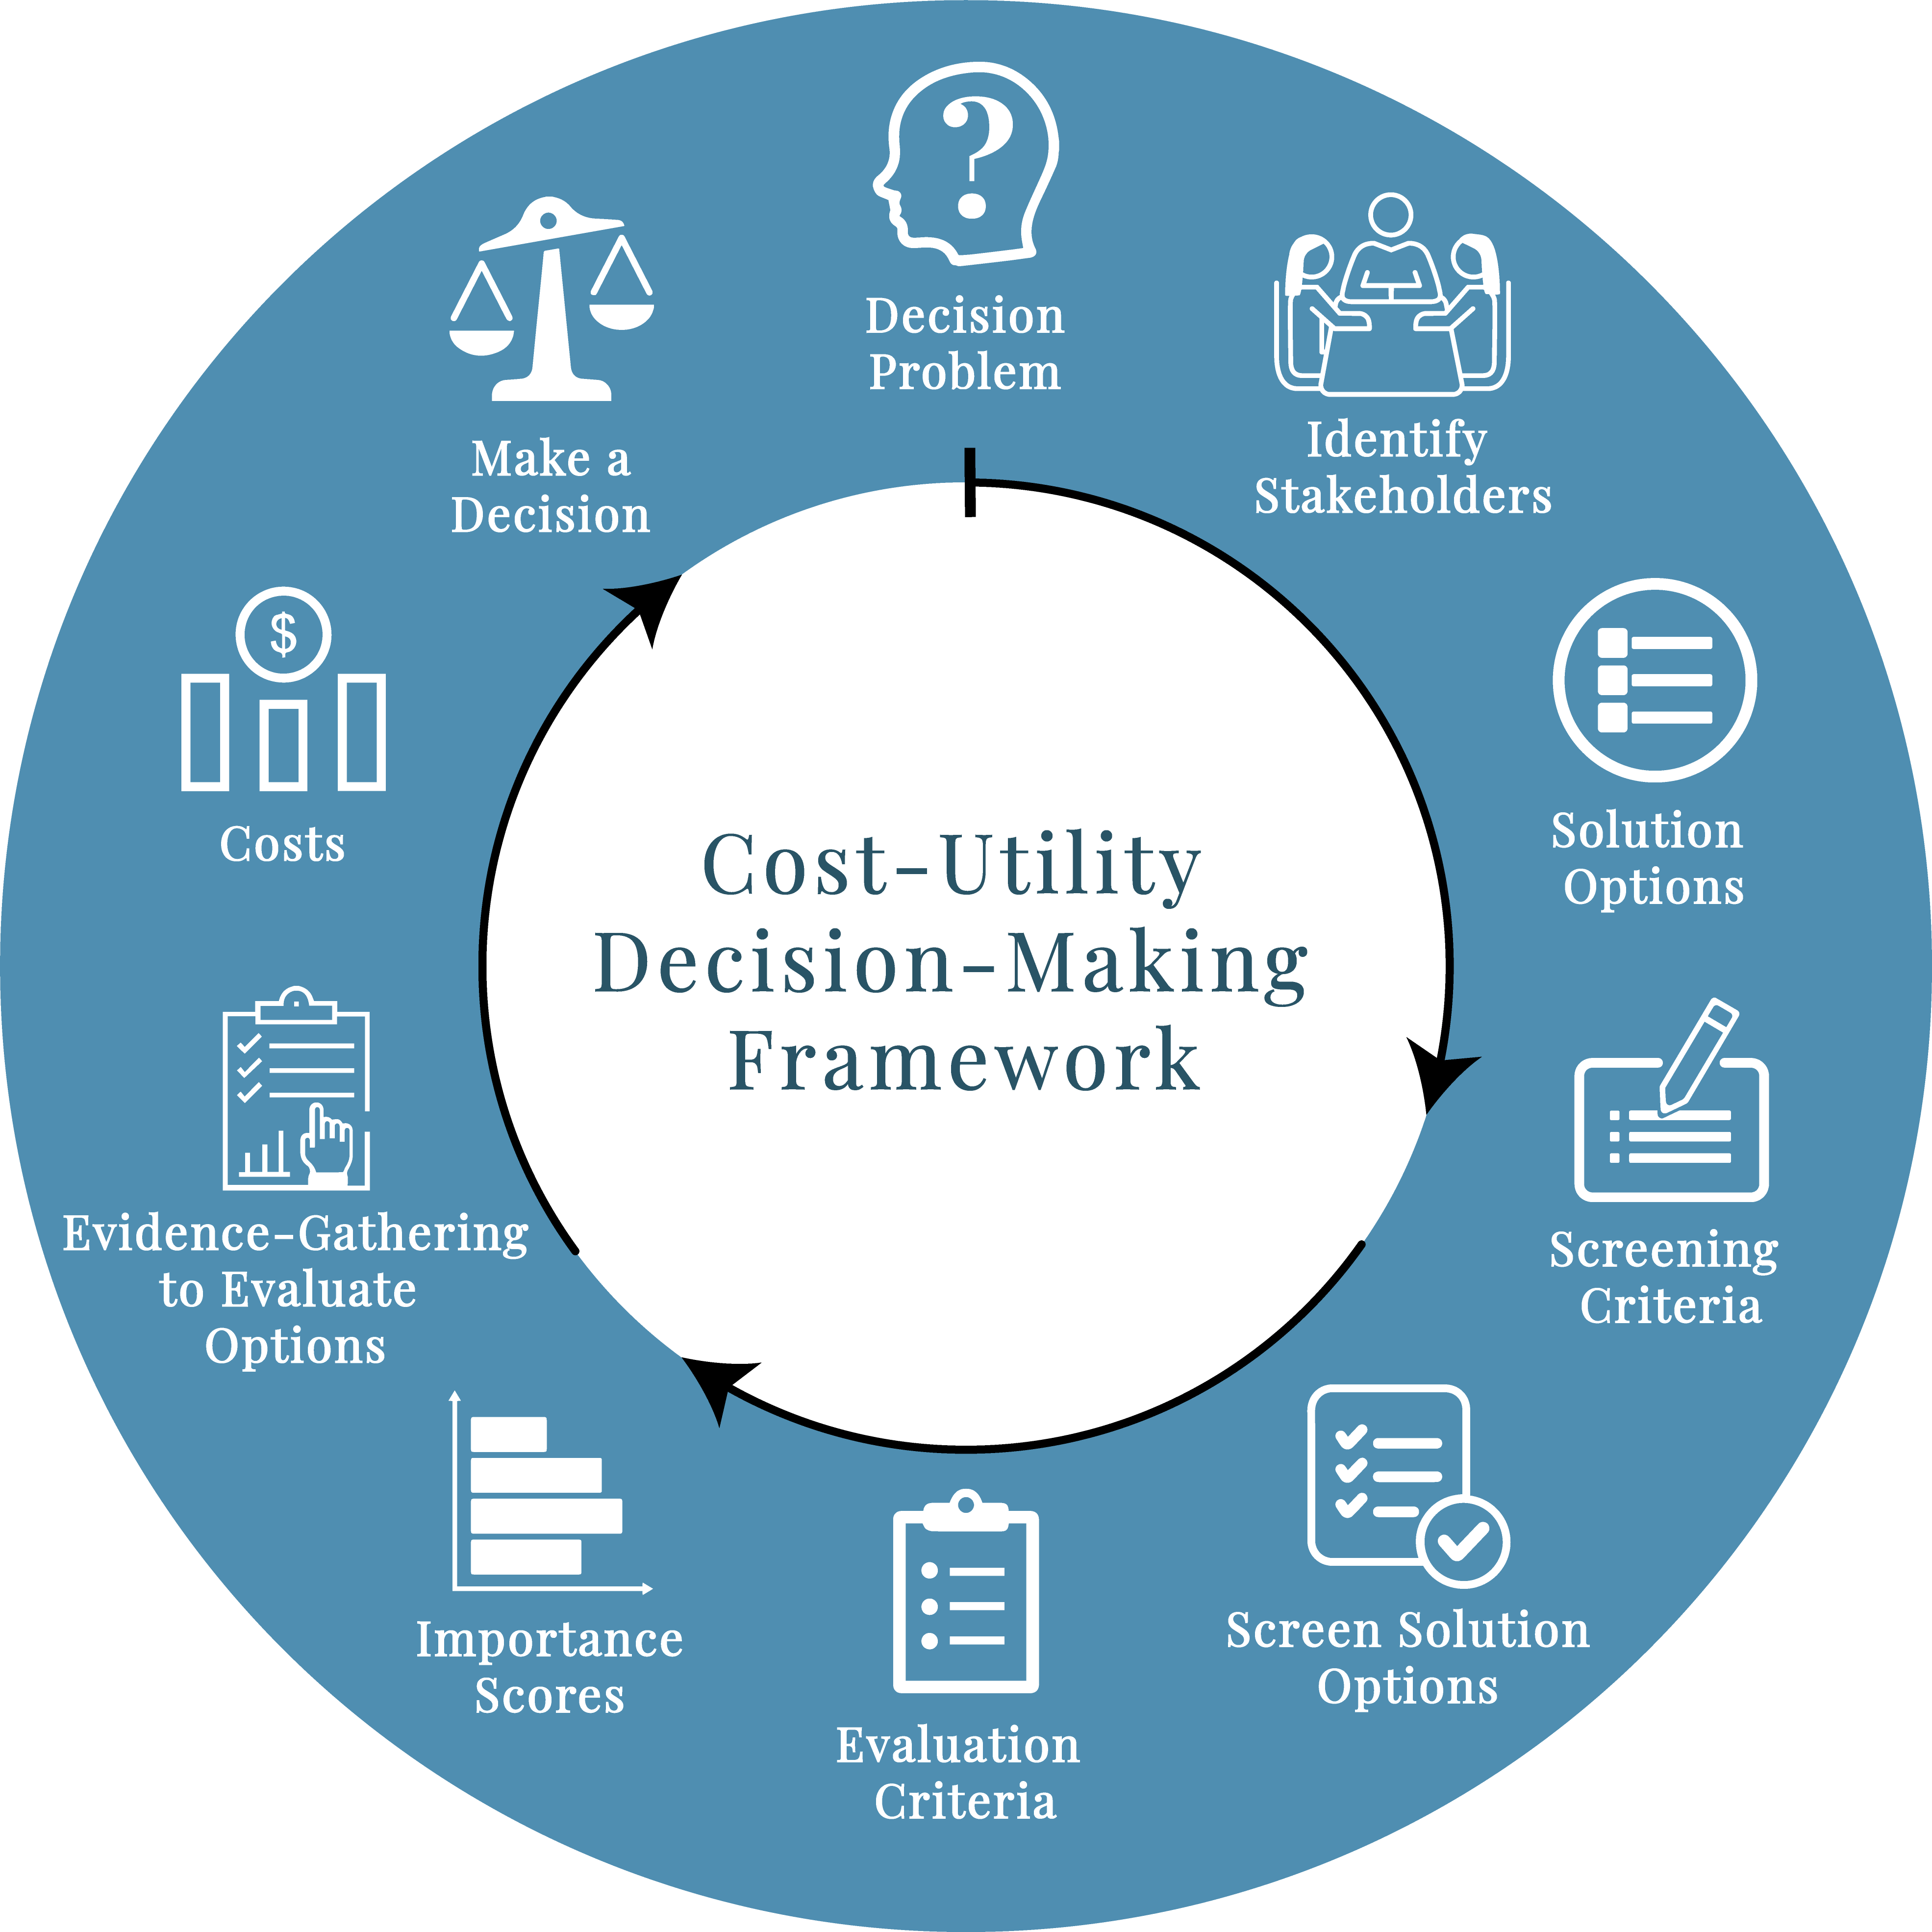 Circular flowchart of decision-making steps